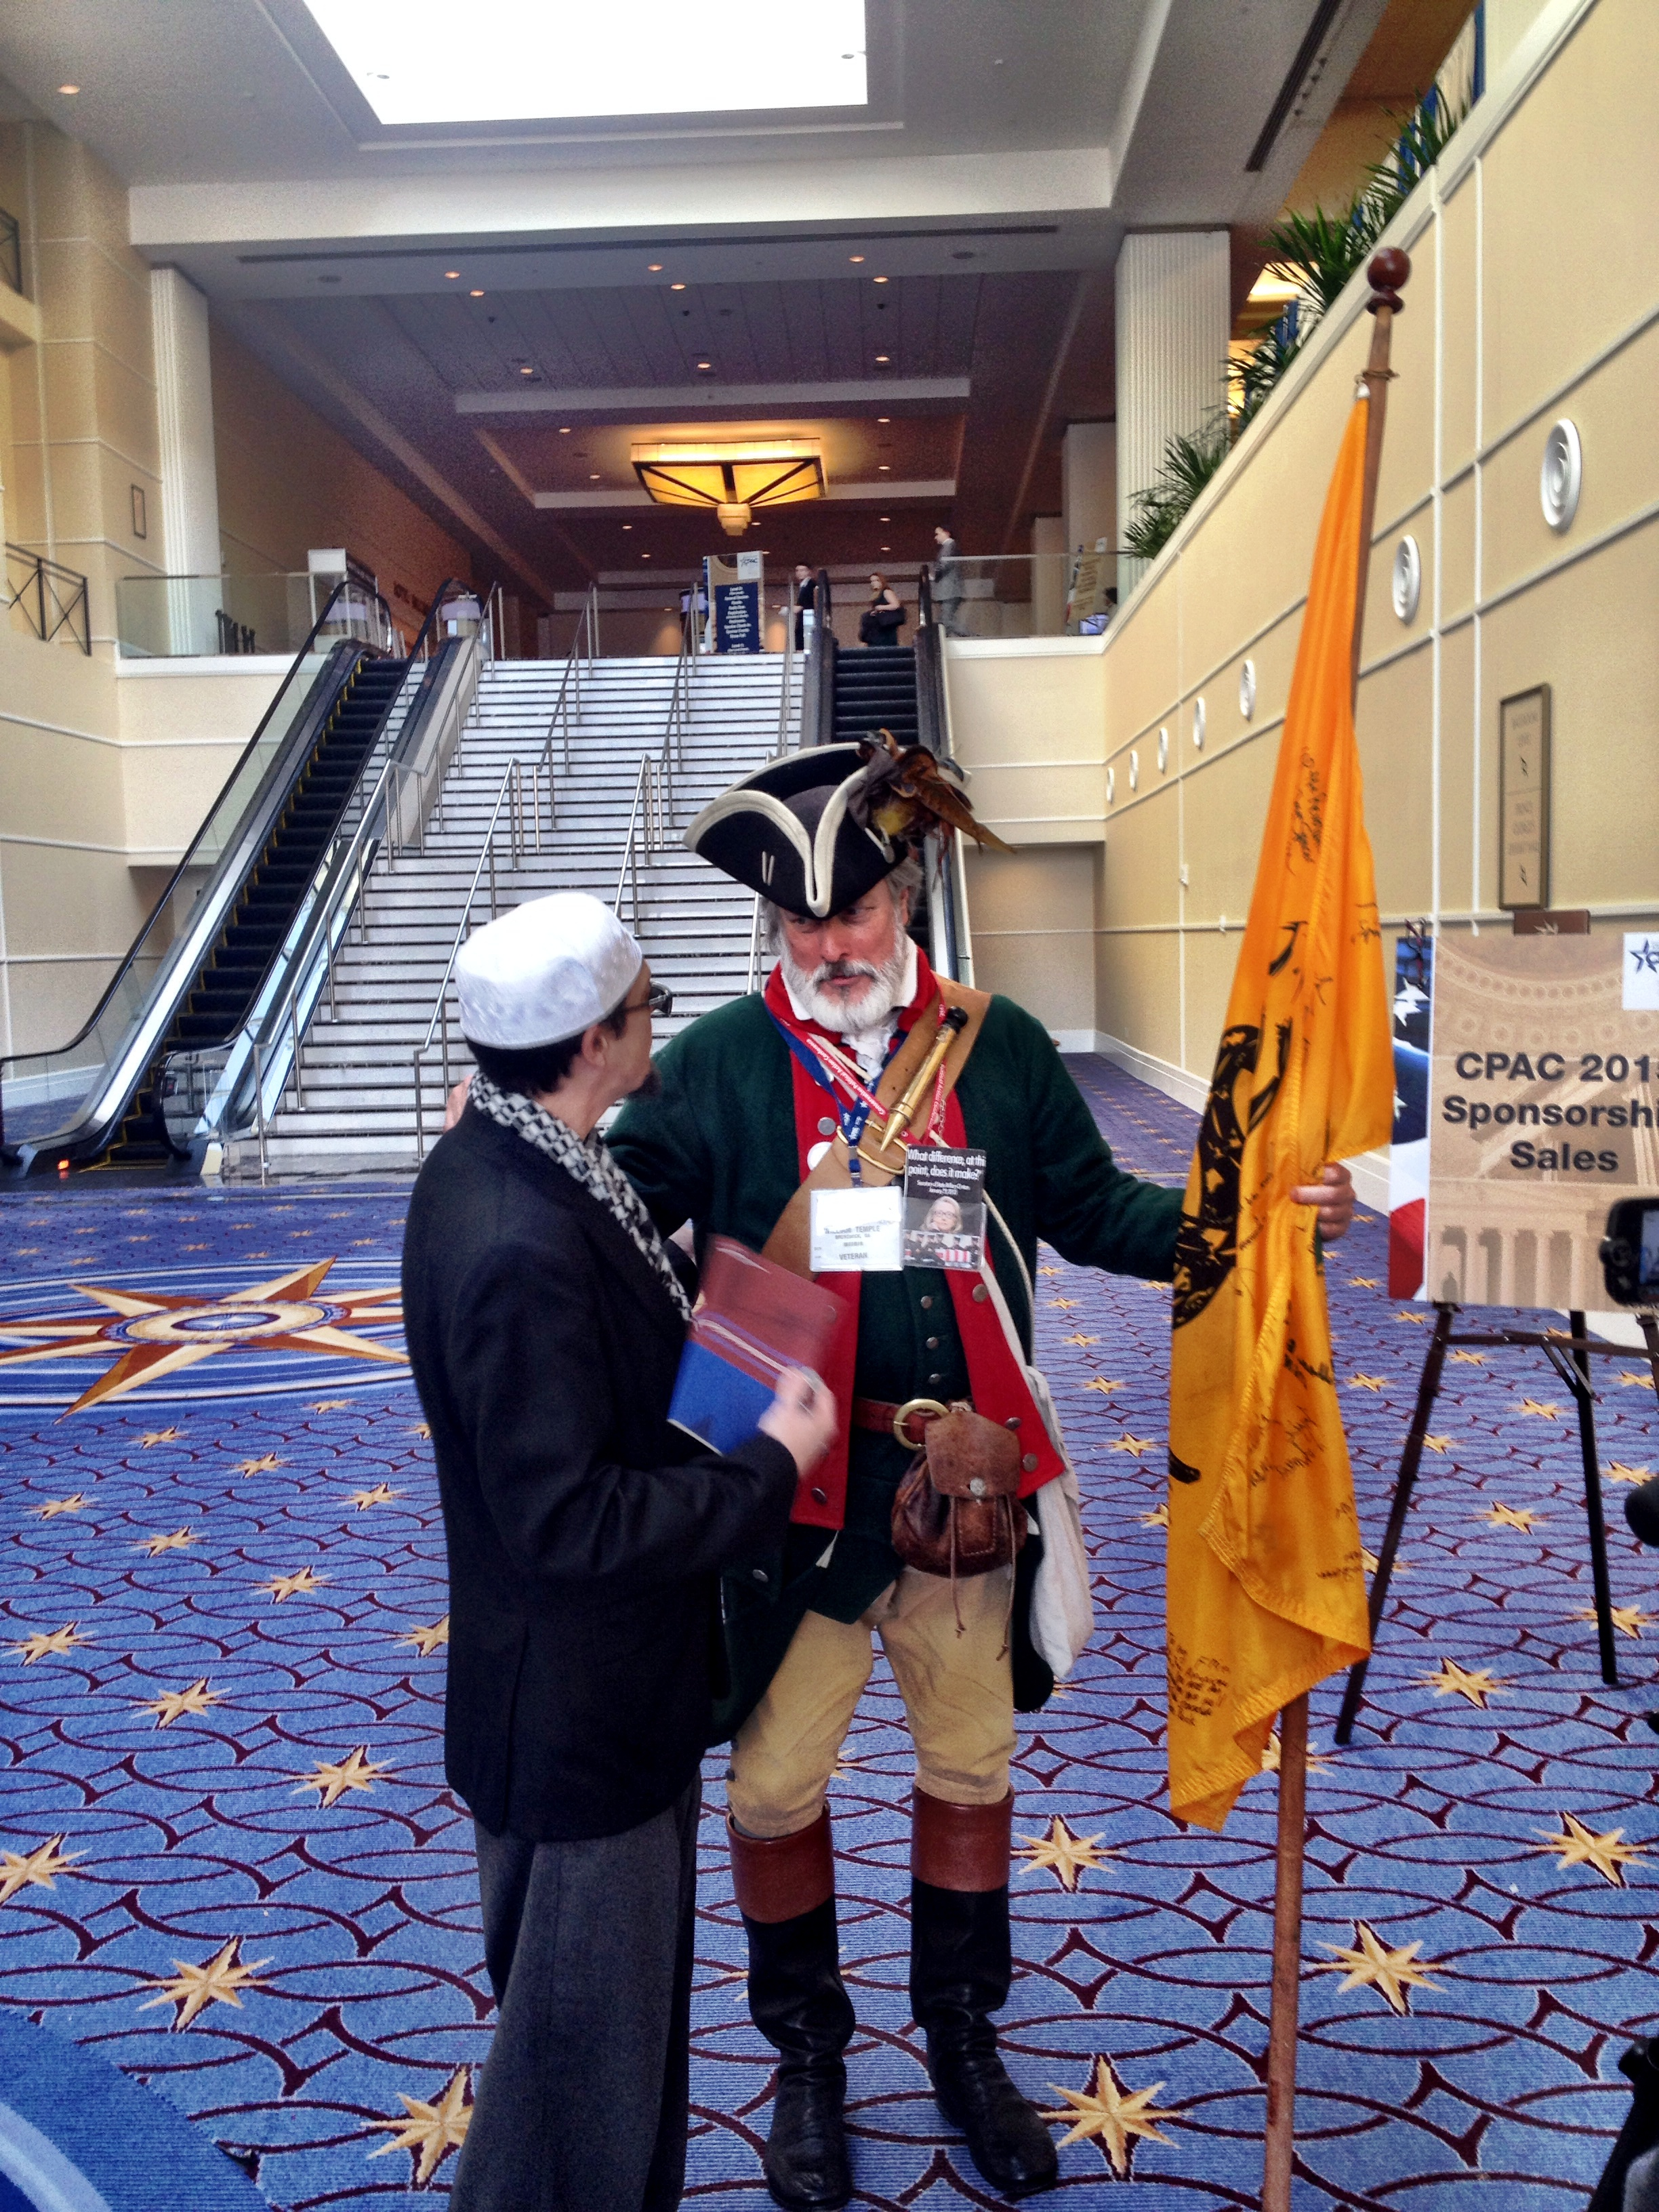 William Temple, one of 11,000 attendees of CPAC, came dressed as a Revolutionary War officer. CPAC is said to be the largest annual gathering of American conservatives. (Photo by Liz Ruskin/APRN)